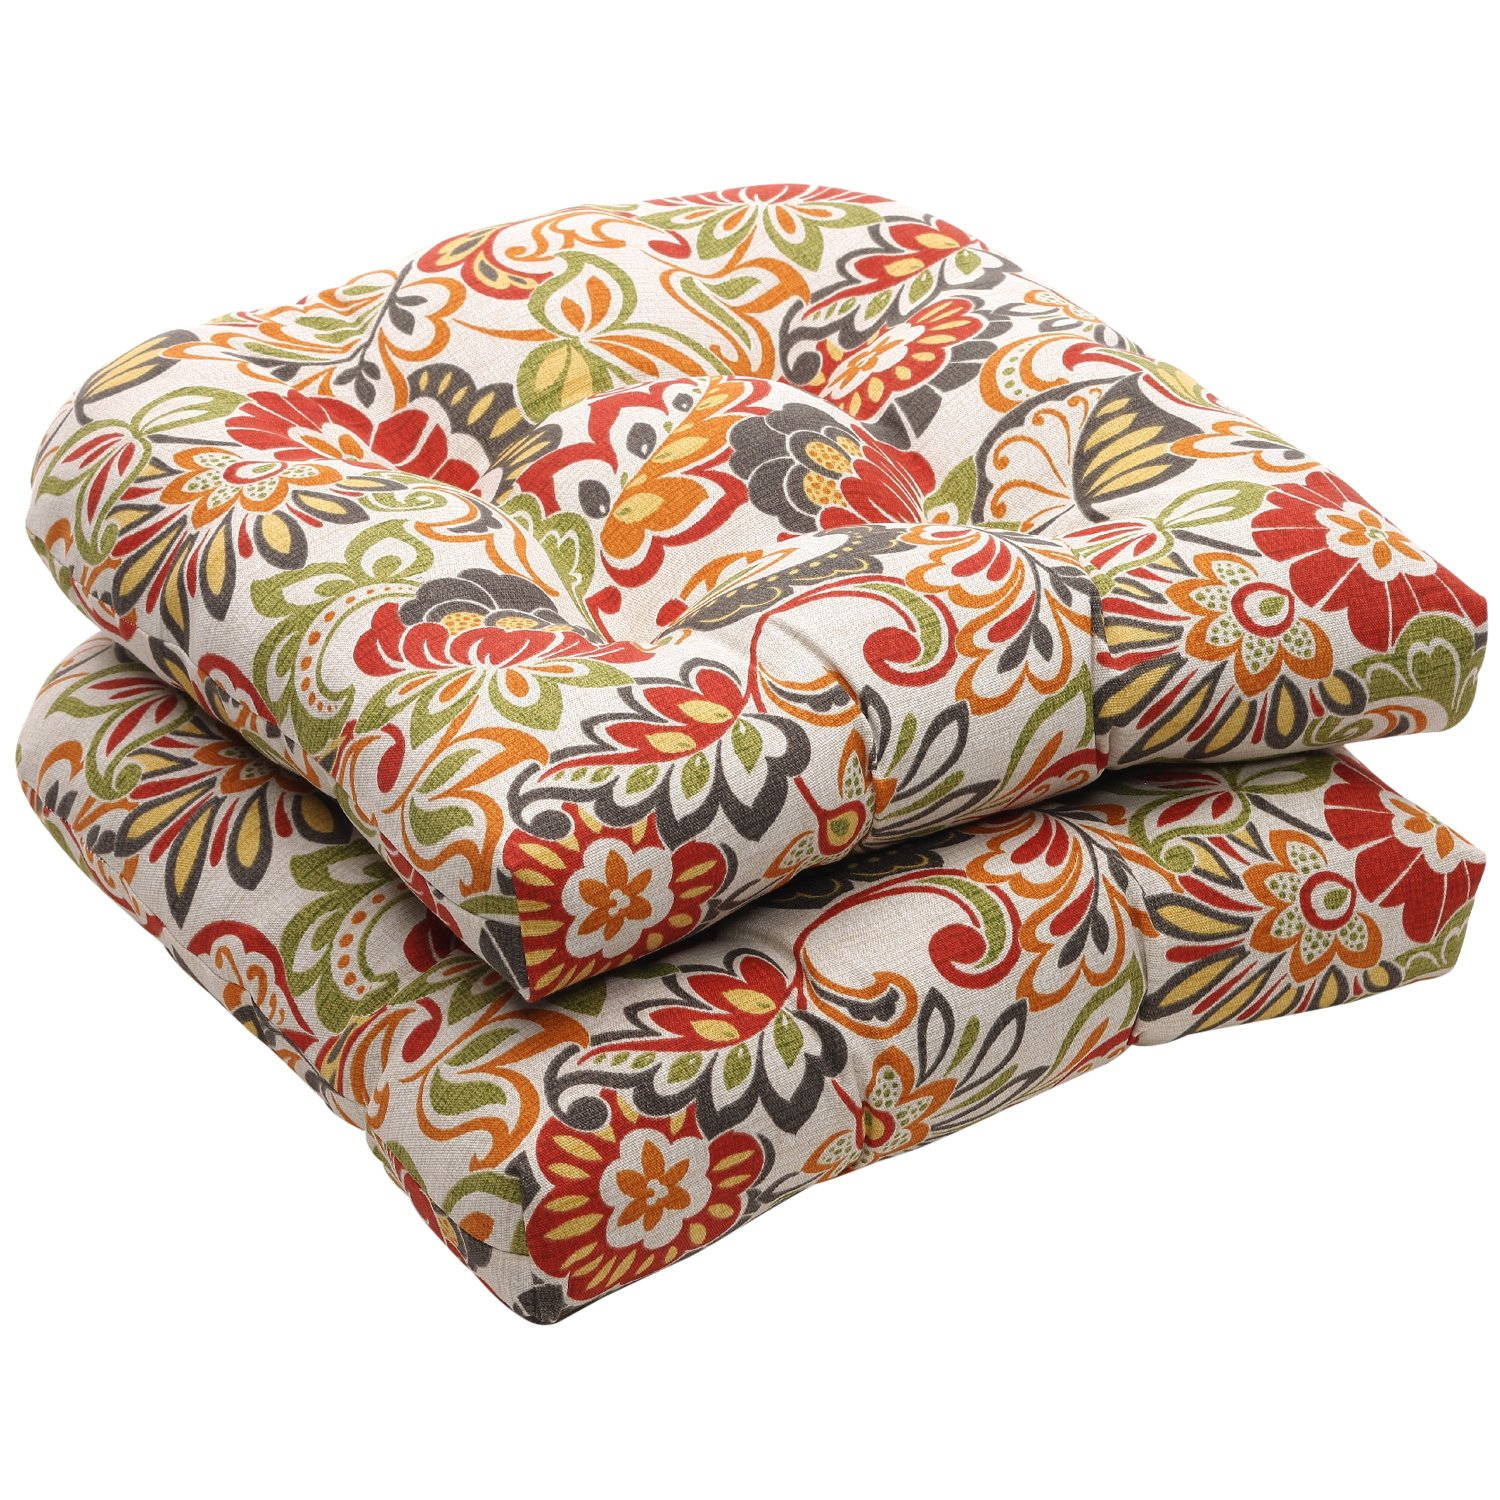 2 Seat Cushion Pillow For Outdoor Patio Furniture Porch  : 812yS31RAcLSL1500 from www.ebay.com size 1500 x 1500 jpeg 483kB